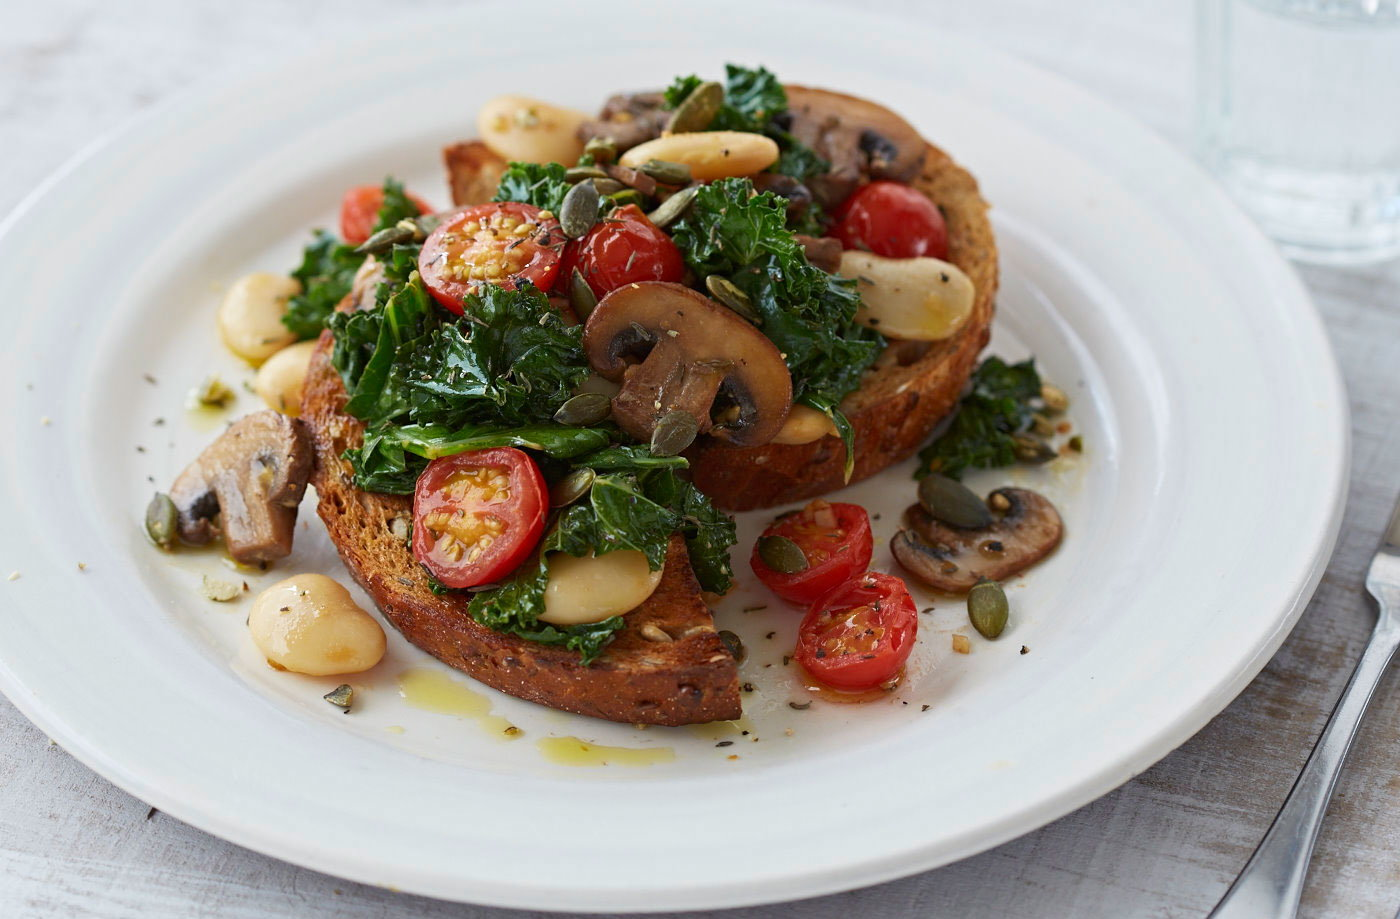 Tomato, mushroom and bean pan-fry